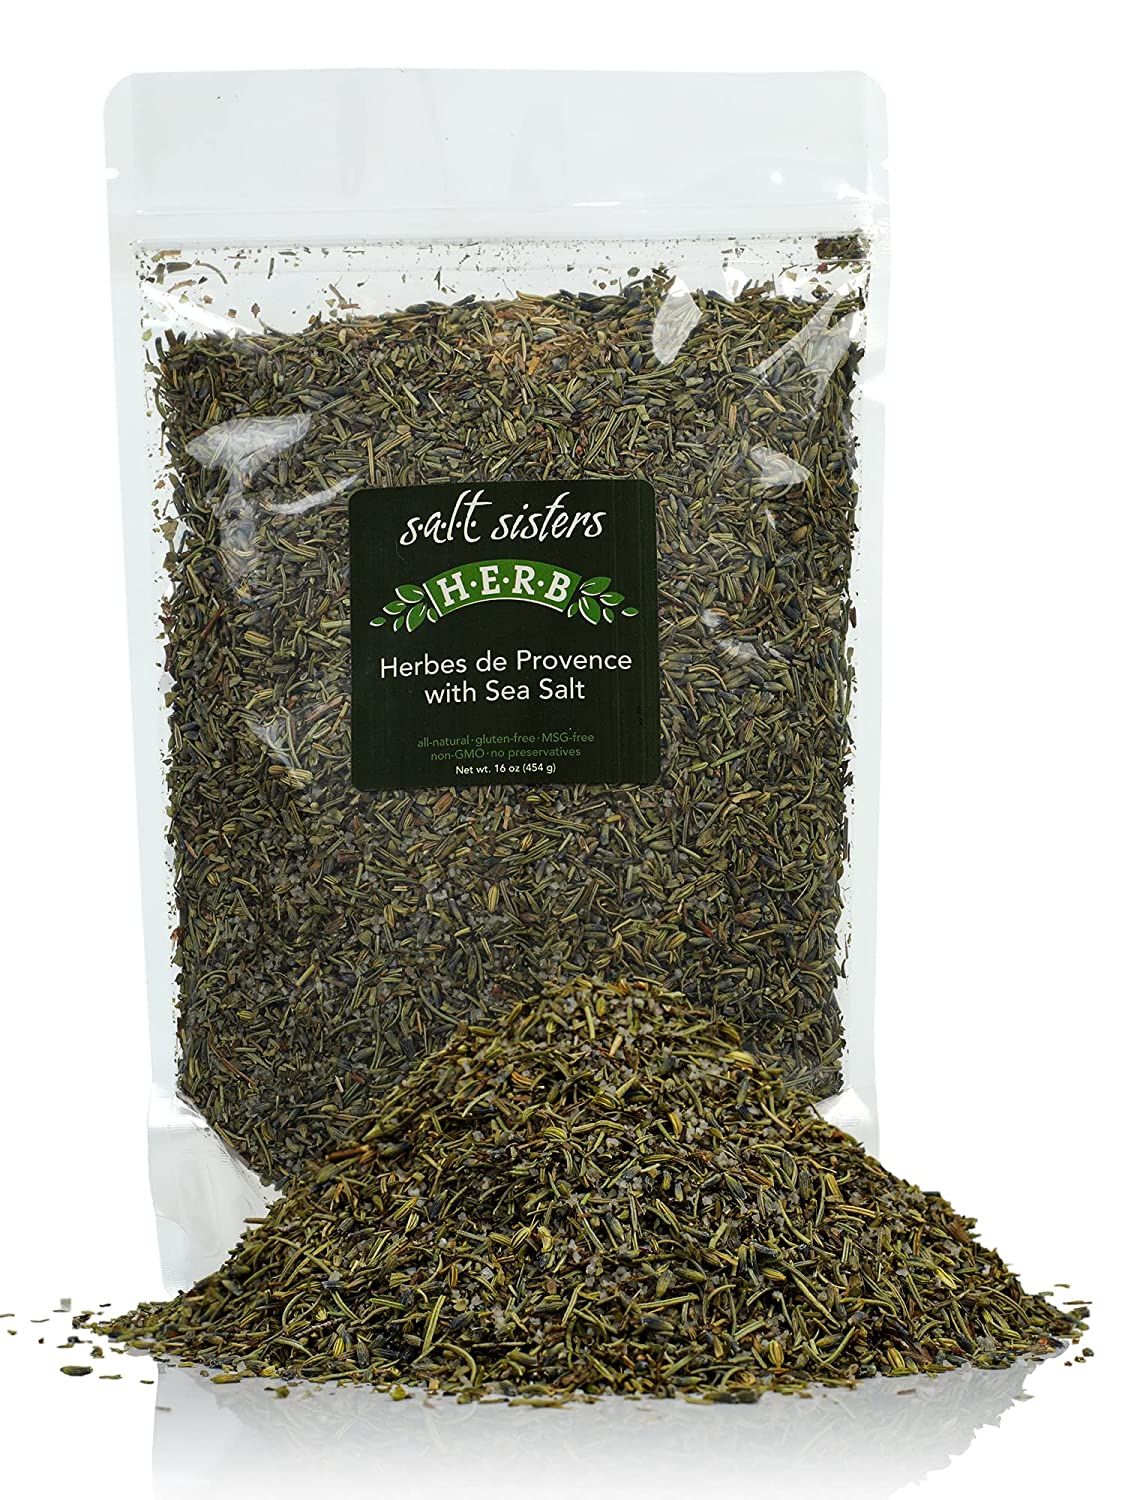 s.a.l.t. sisters Herbes de Provence Sea Sales results No. 1 with Same day shipping 16 Ounce Salt